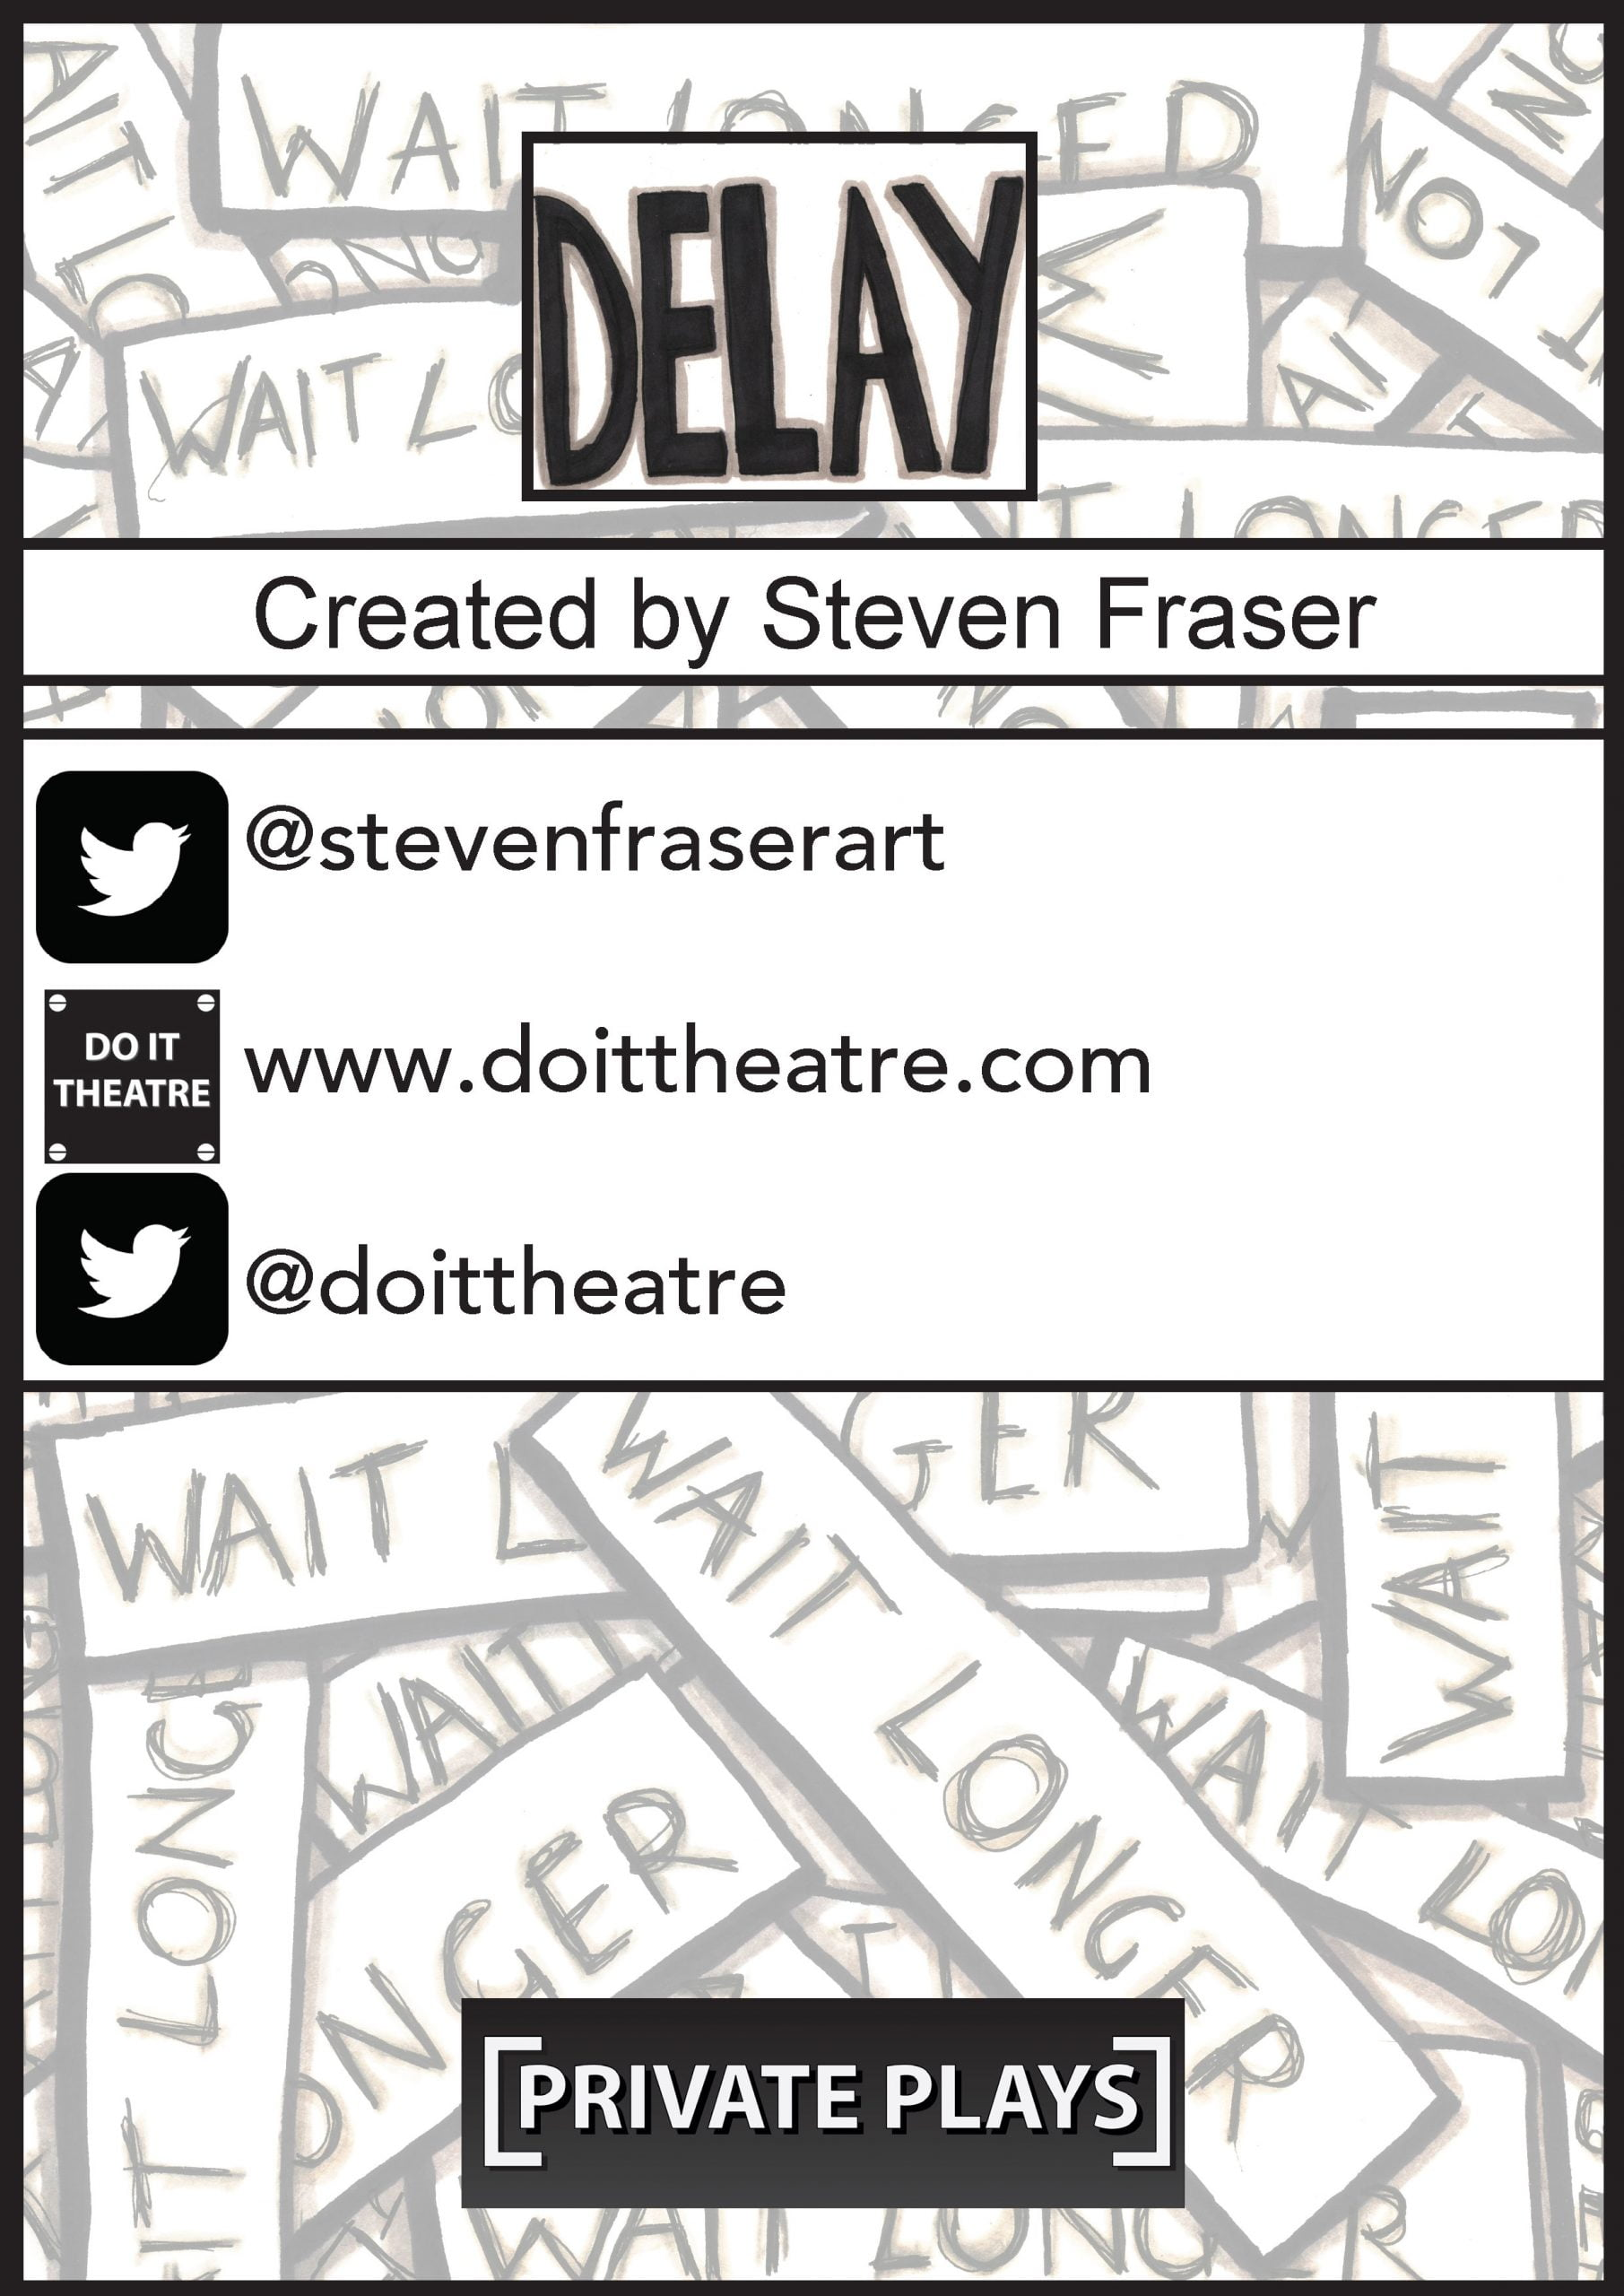 """Covering the page in a faded grey are multiple text boxes with the words """"Wait longer"""". Over this background are credits for the work. They read: """"DELAY"""" """"Created by Steven Fraser"""" , """"@stevenfraserart"""" """"www.doittheatre.com"""" and """"@doittheatre"""""""